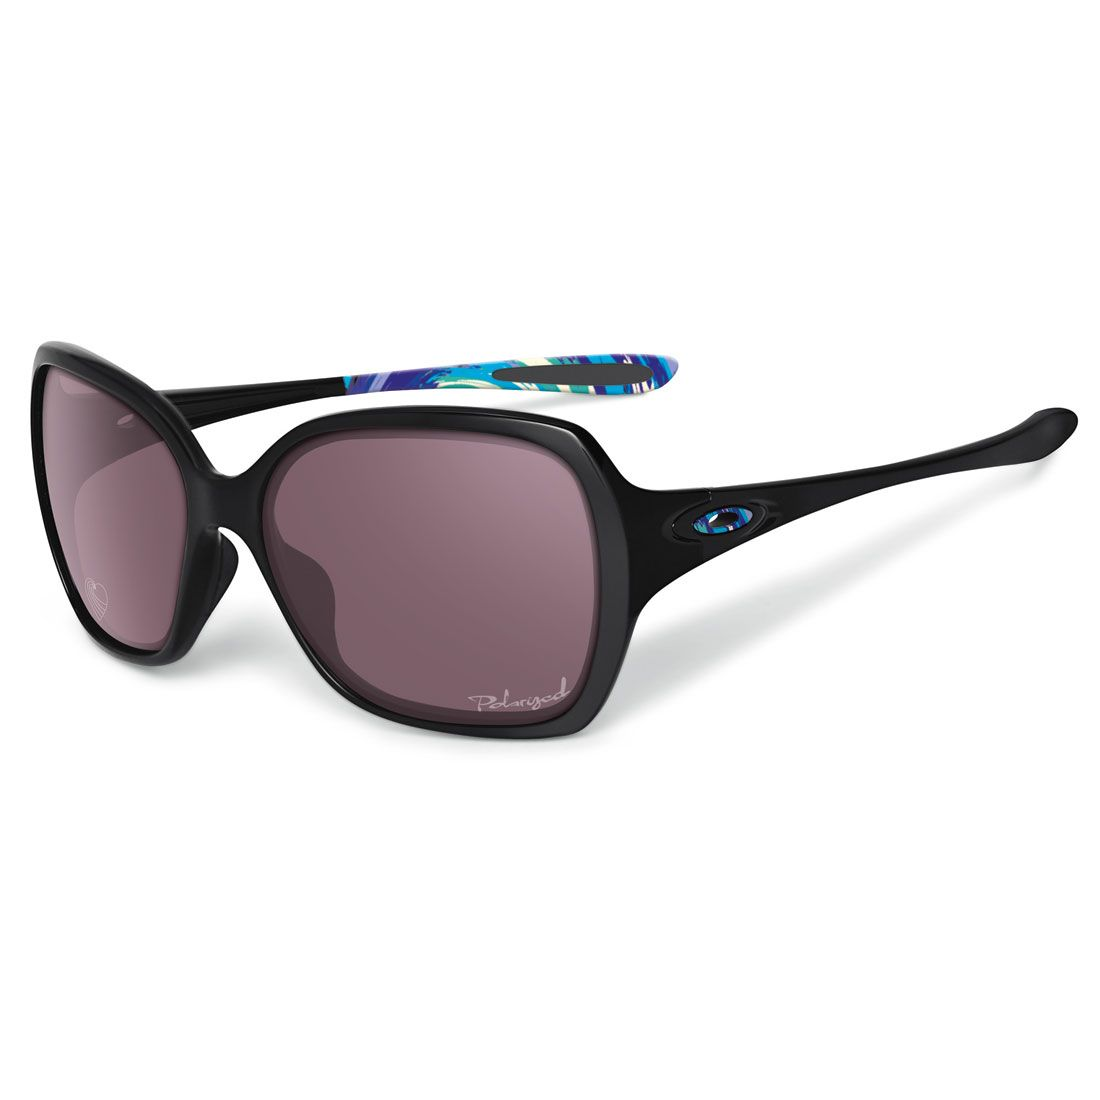 a663af1c3d ... oakley womens overtime sunglasses karena polished black w oo grey  polarized oo9167 17 ...